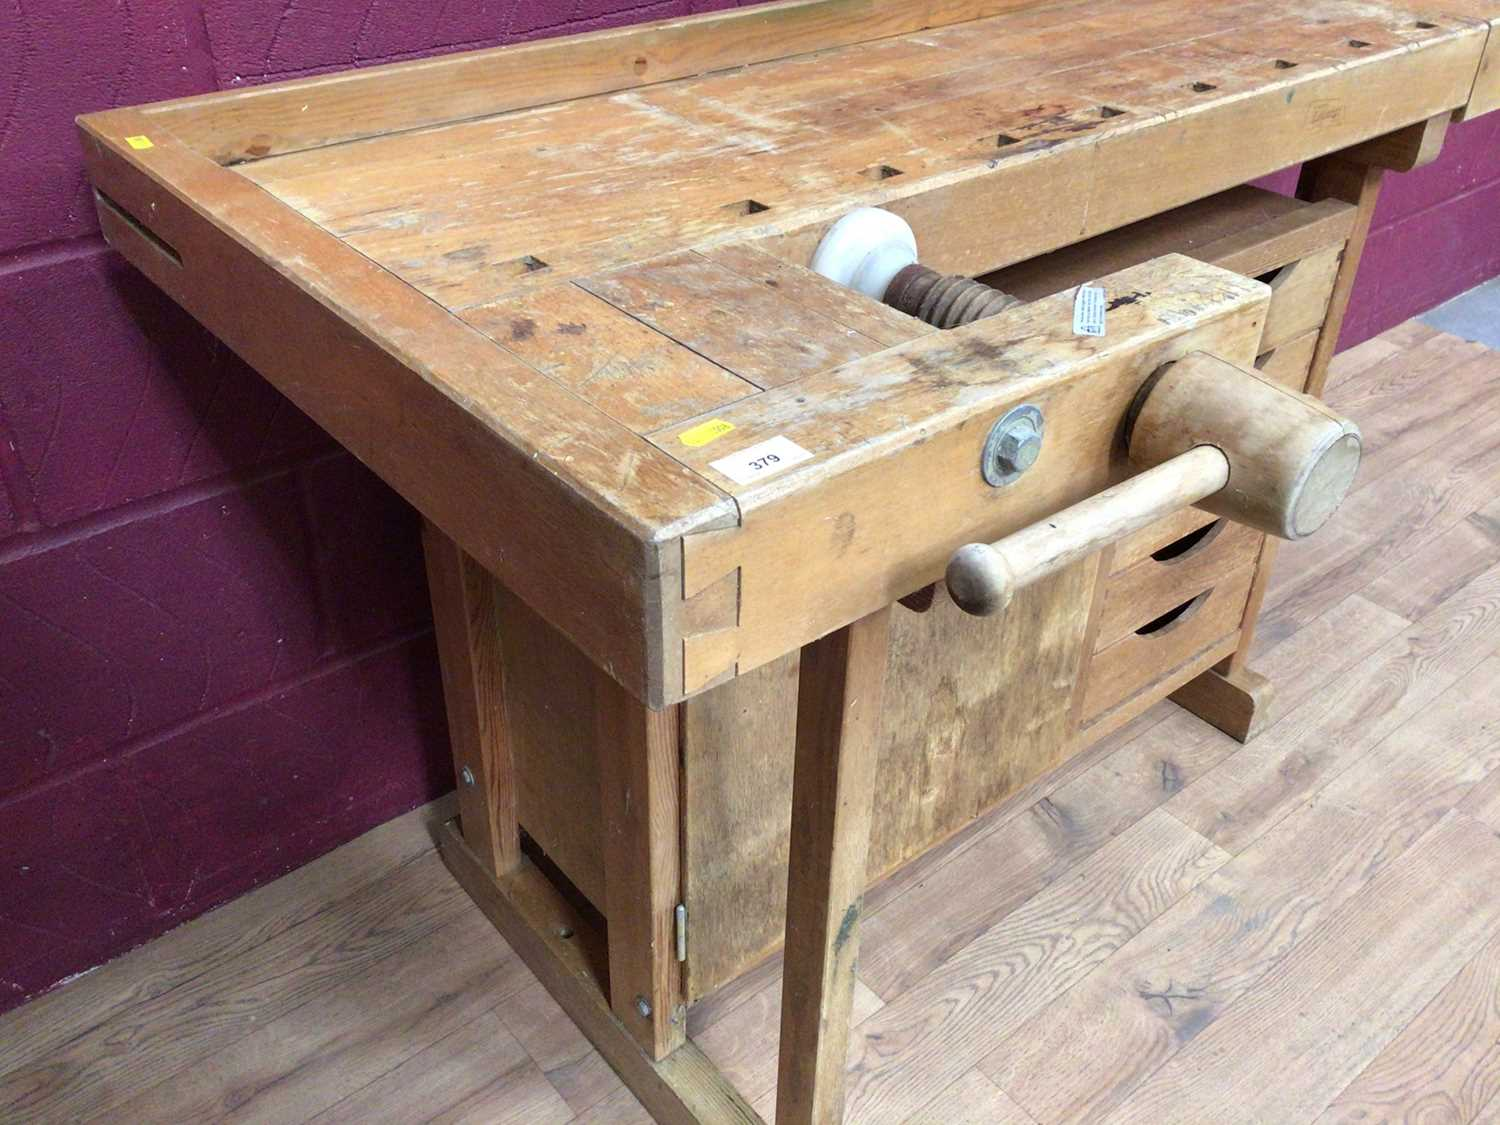 Scandanavian work bench by Gobergs of Sweden - Image 3 of 8